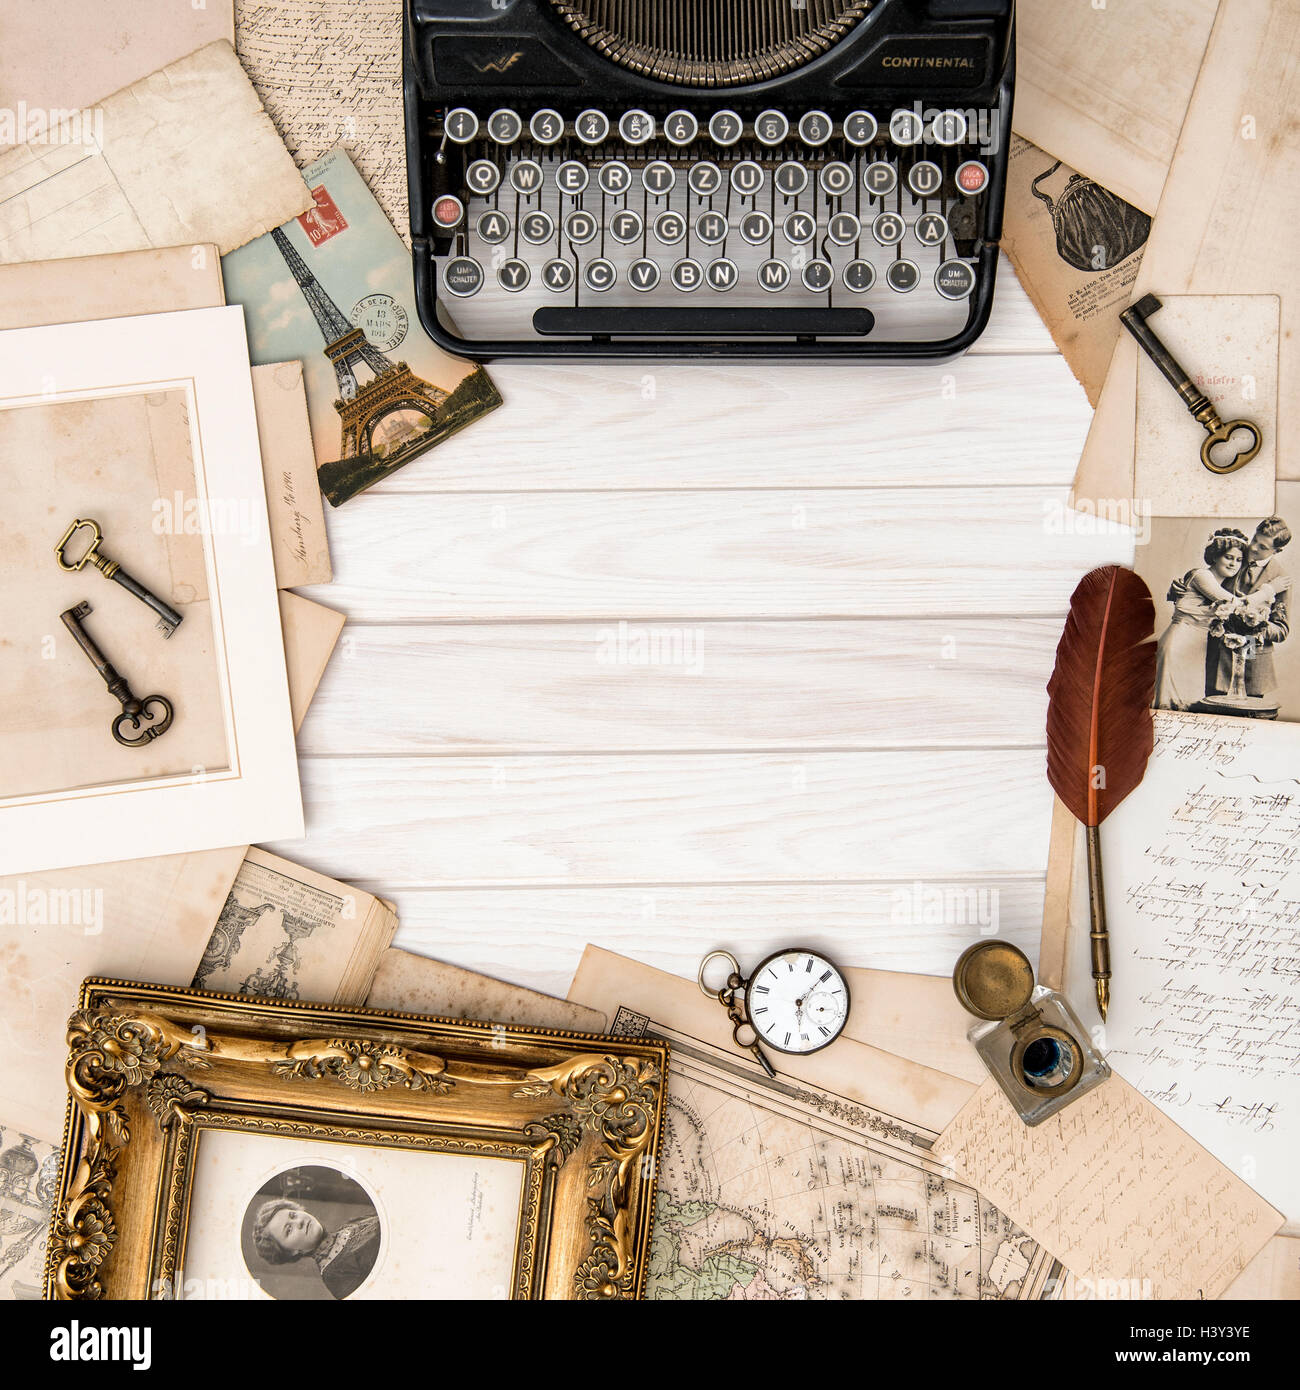 Charmant Antique Typewriter And Vintage Office Accessories On Wooden Table. Flat Lay  Still Life